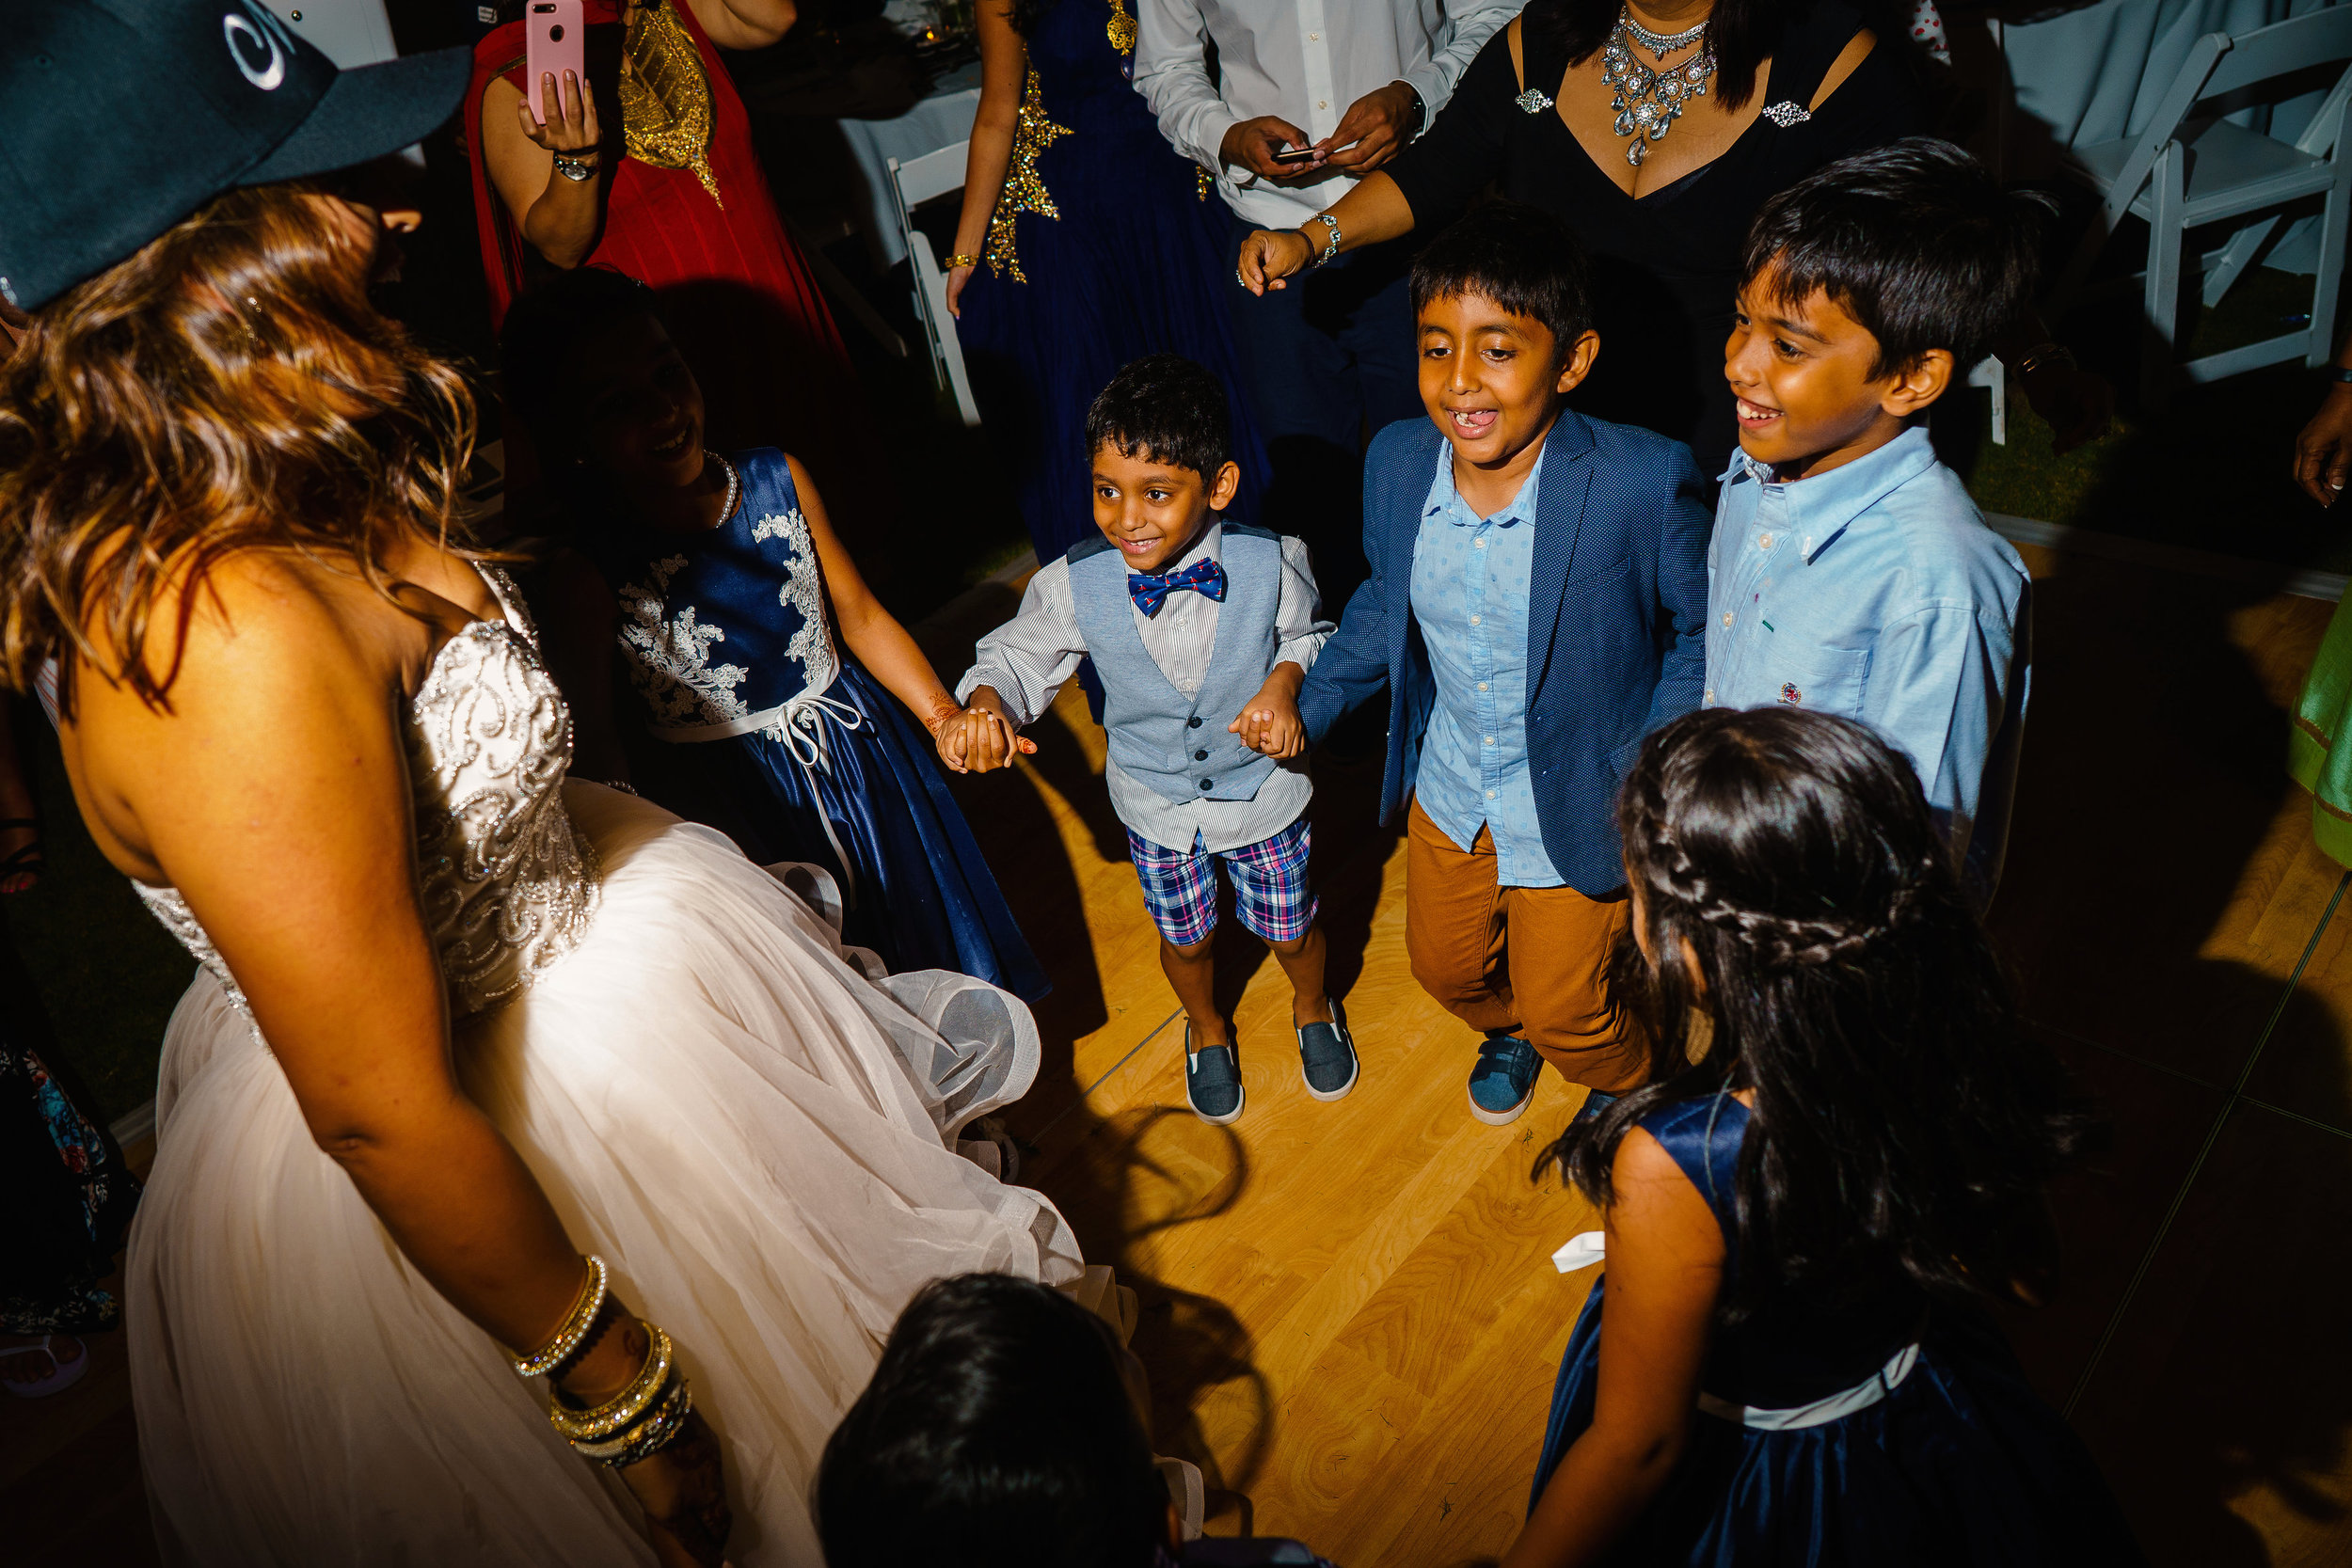 Elianna&Rohan_Wedding_634.jpg